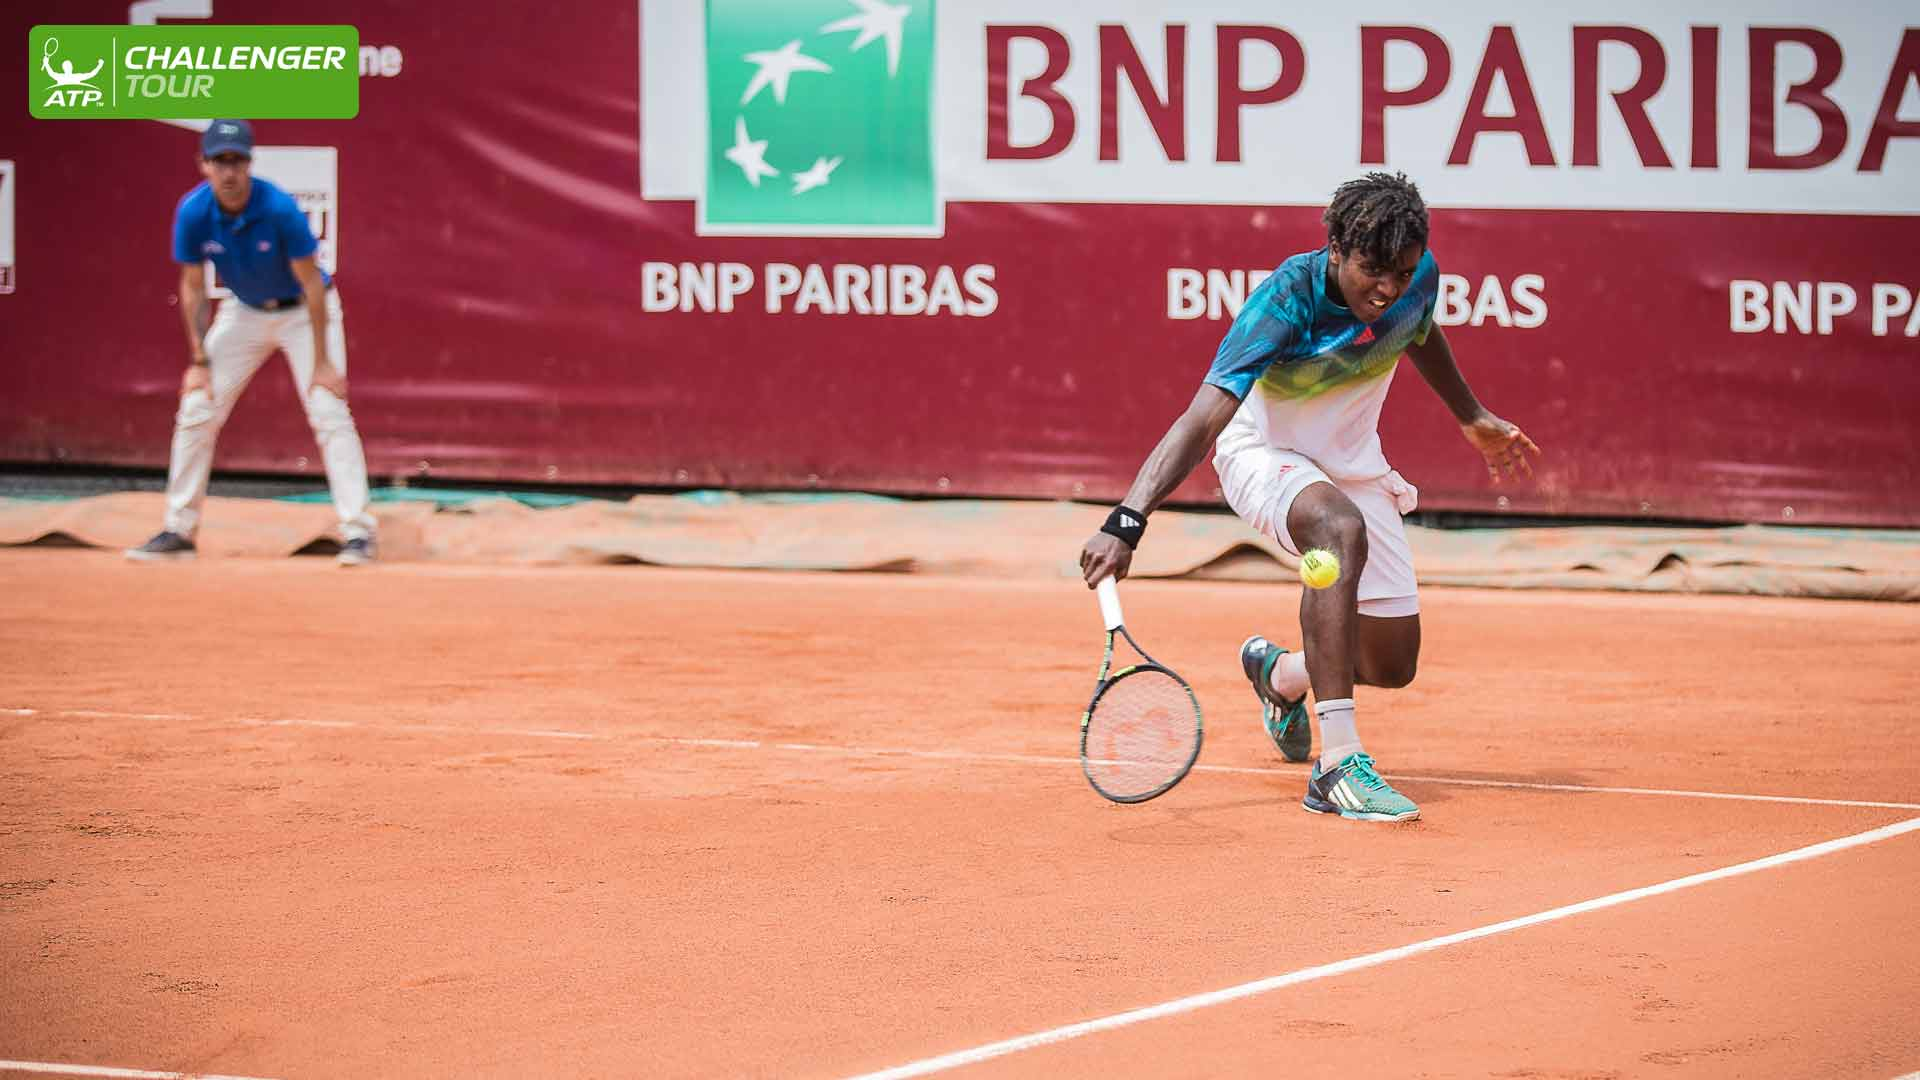 #NextGen Star Elias Ymer survived a nasty fall and tricky opponent to advance on Wednesday at the ATP Challenger Tour event in Bordeaux.